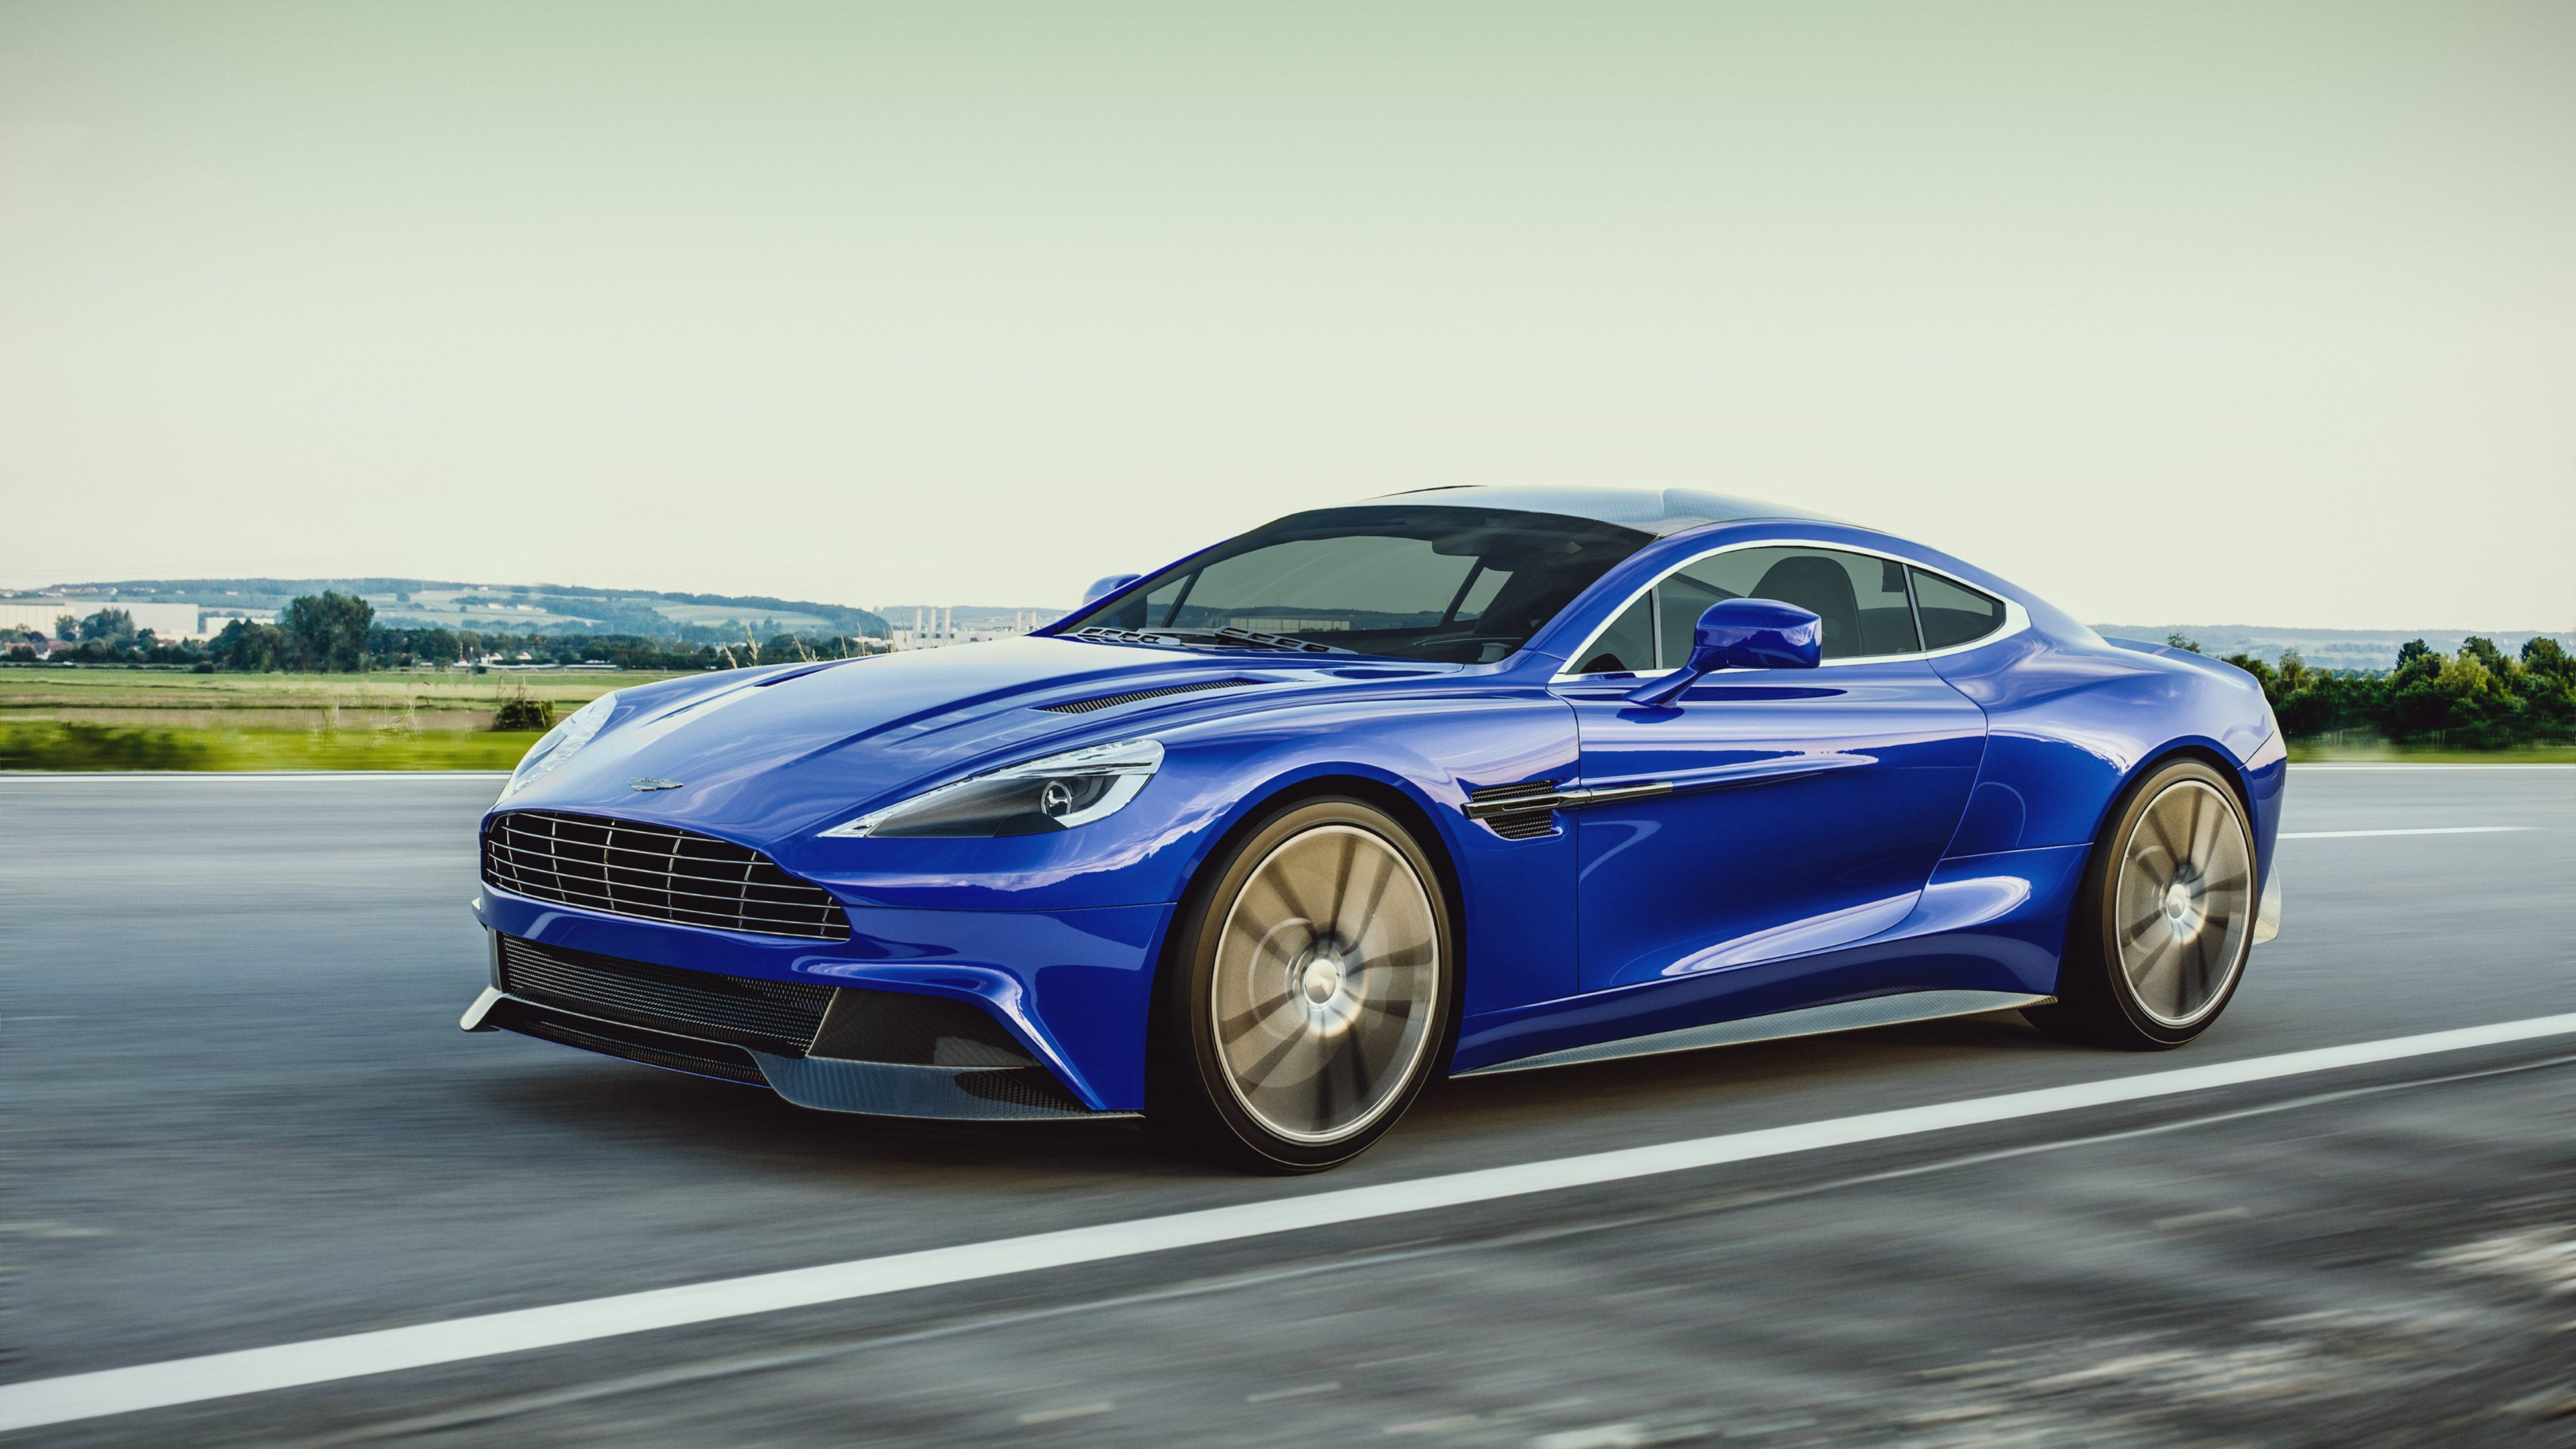 Nice Awesome Aston Martin Vanquish HD Check More At Http://www.finewallpapers.